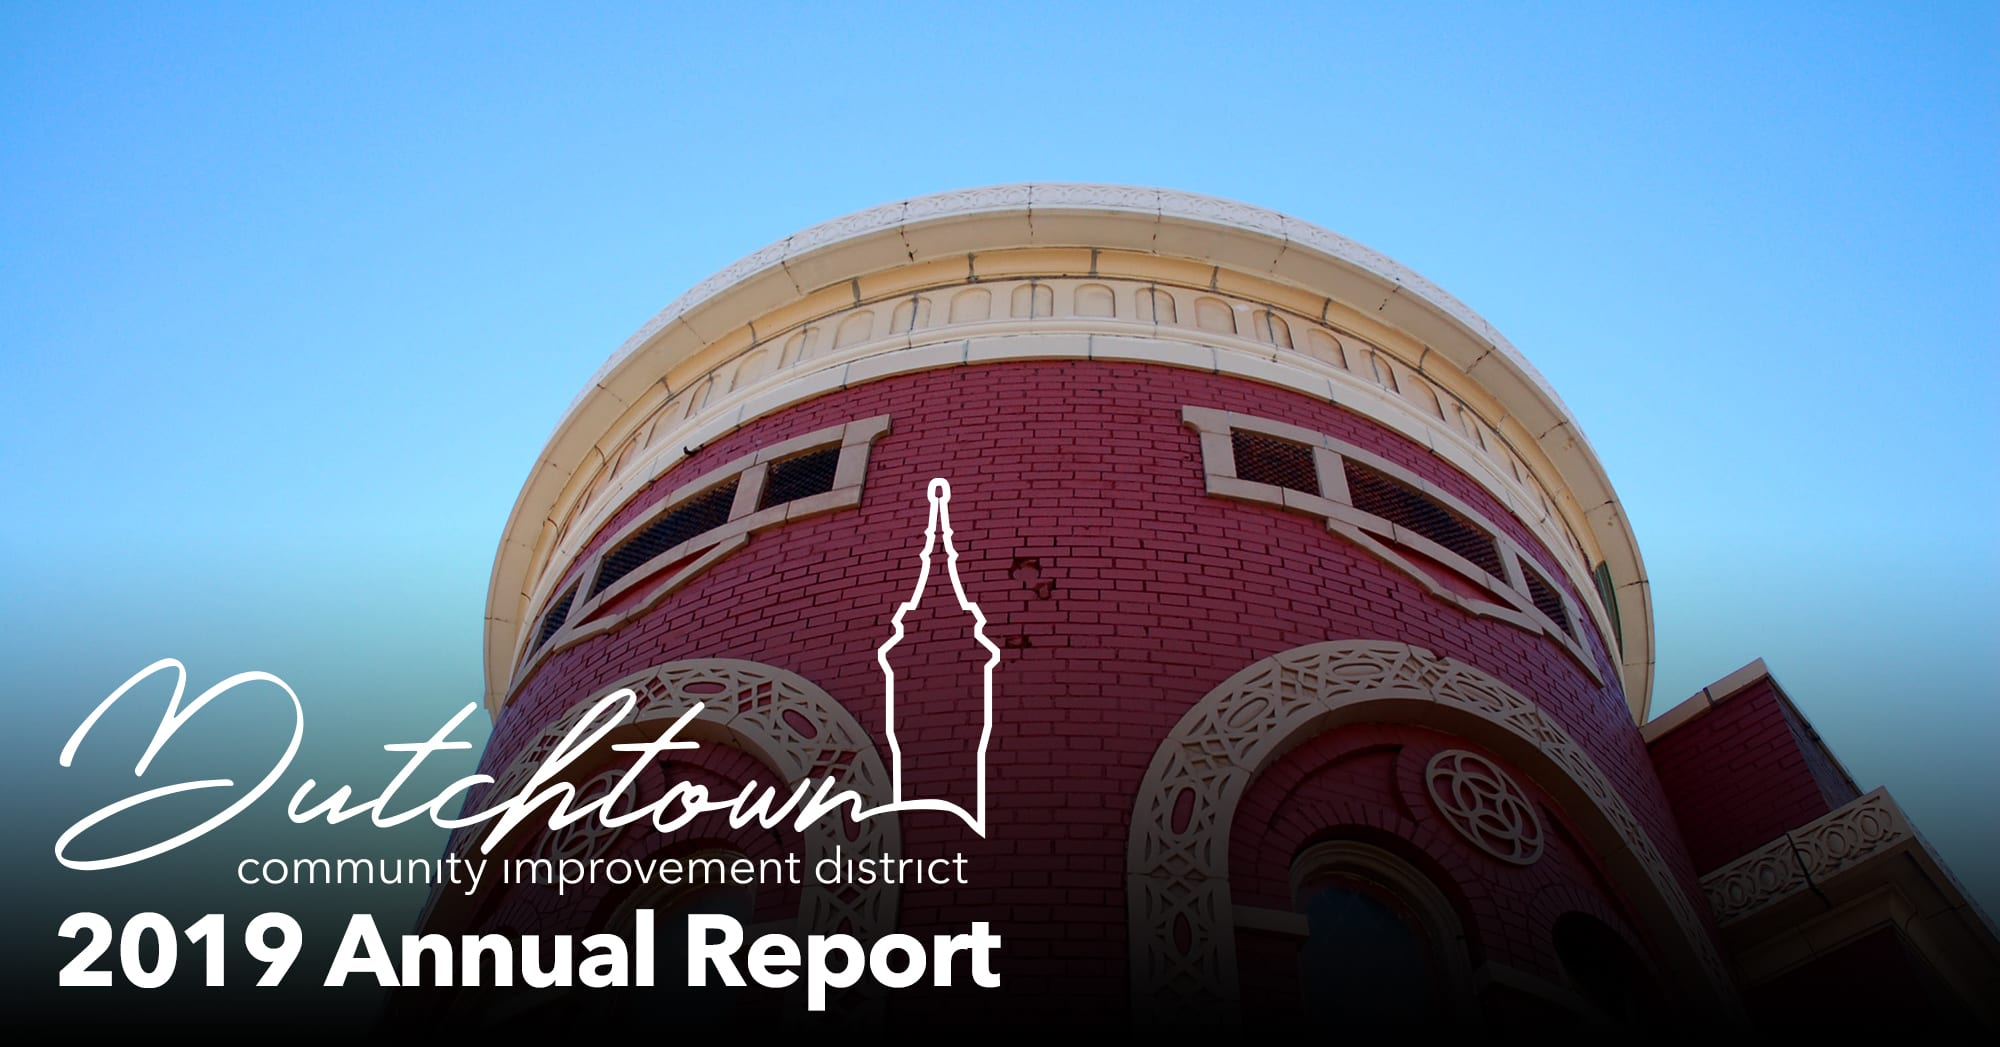 Dutchtown Community Improvement District 2019 Annual Report